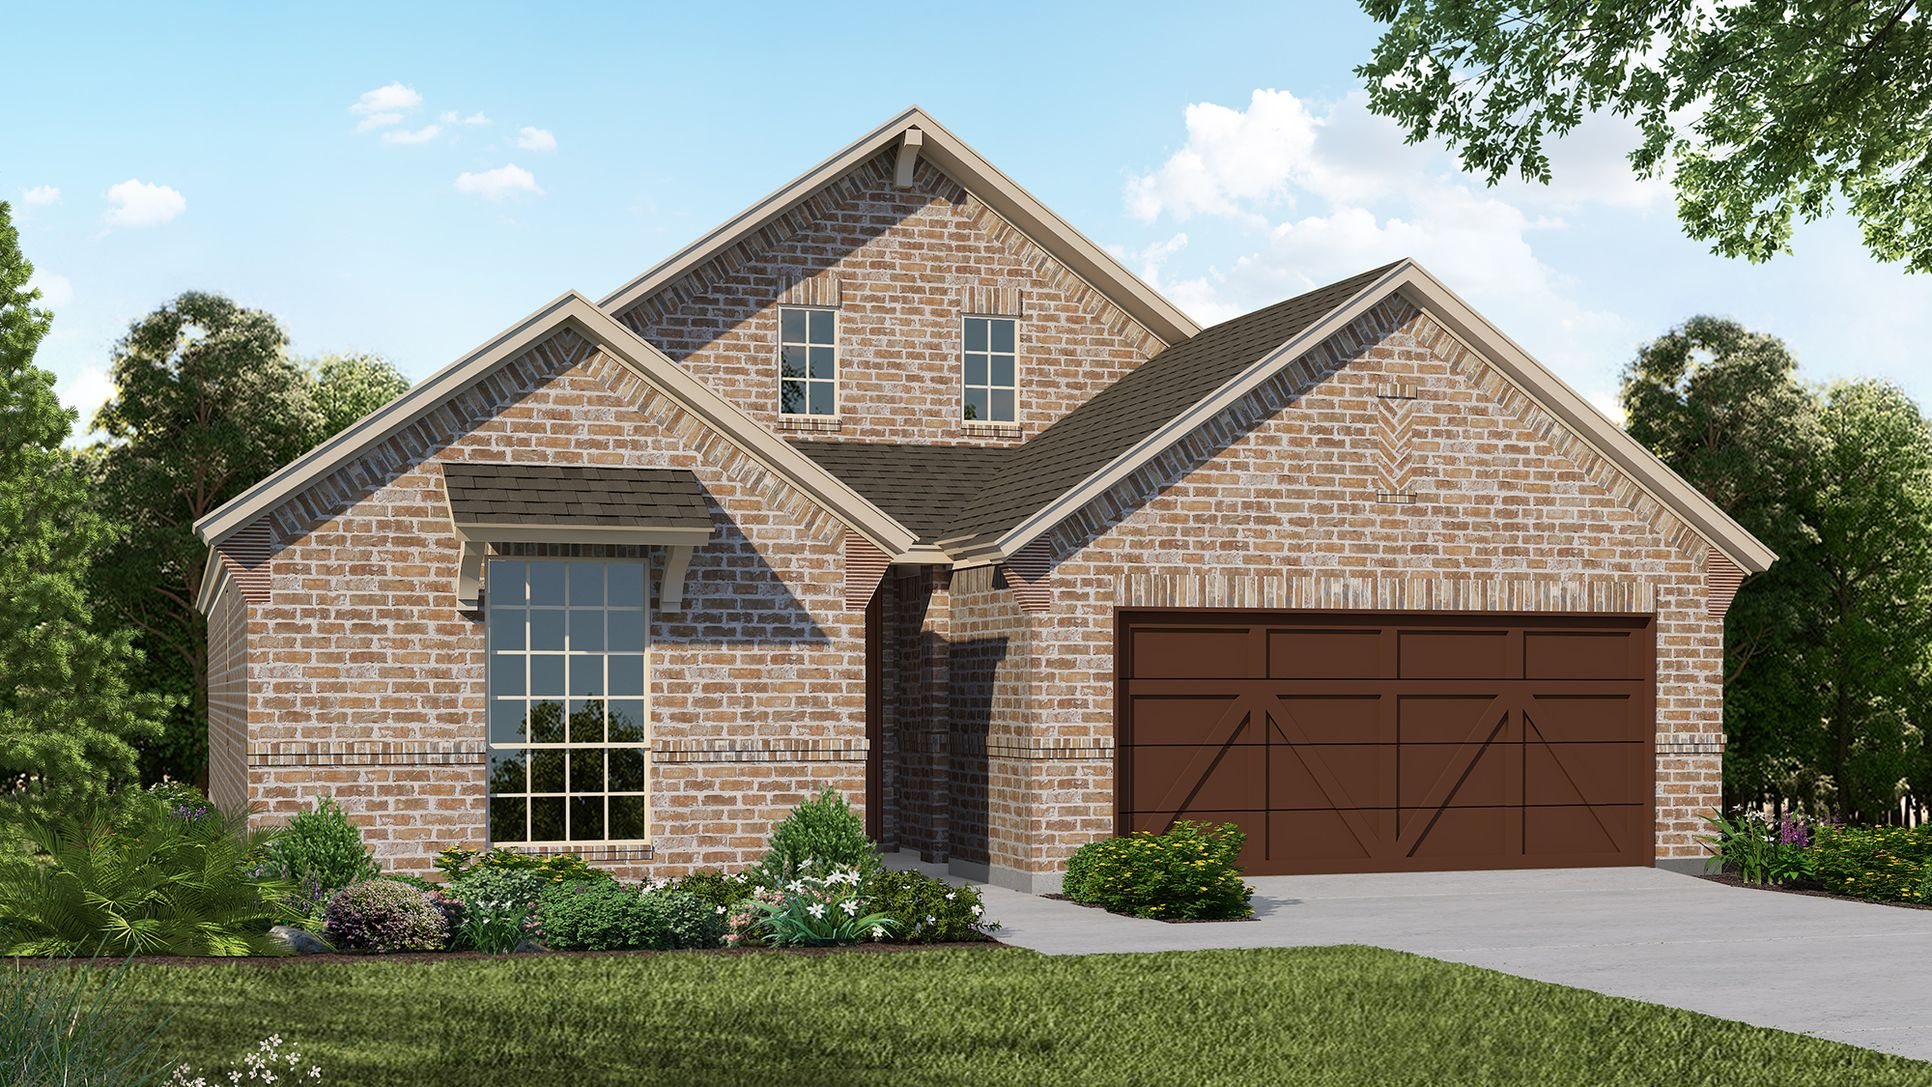 Exterior:Plan 1530 Elevation B by American Legend Homes